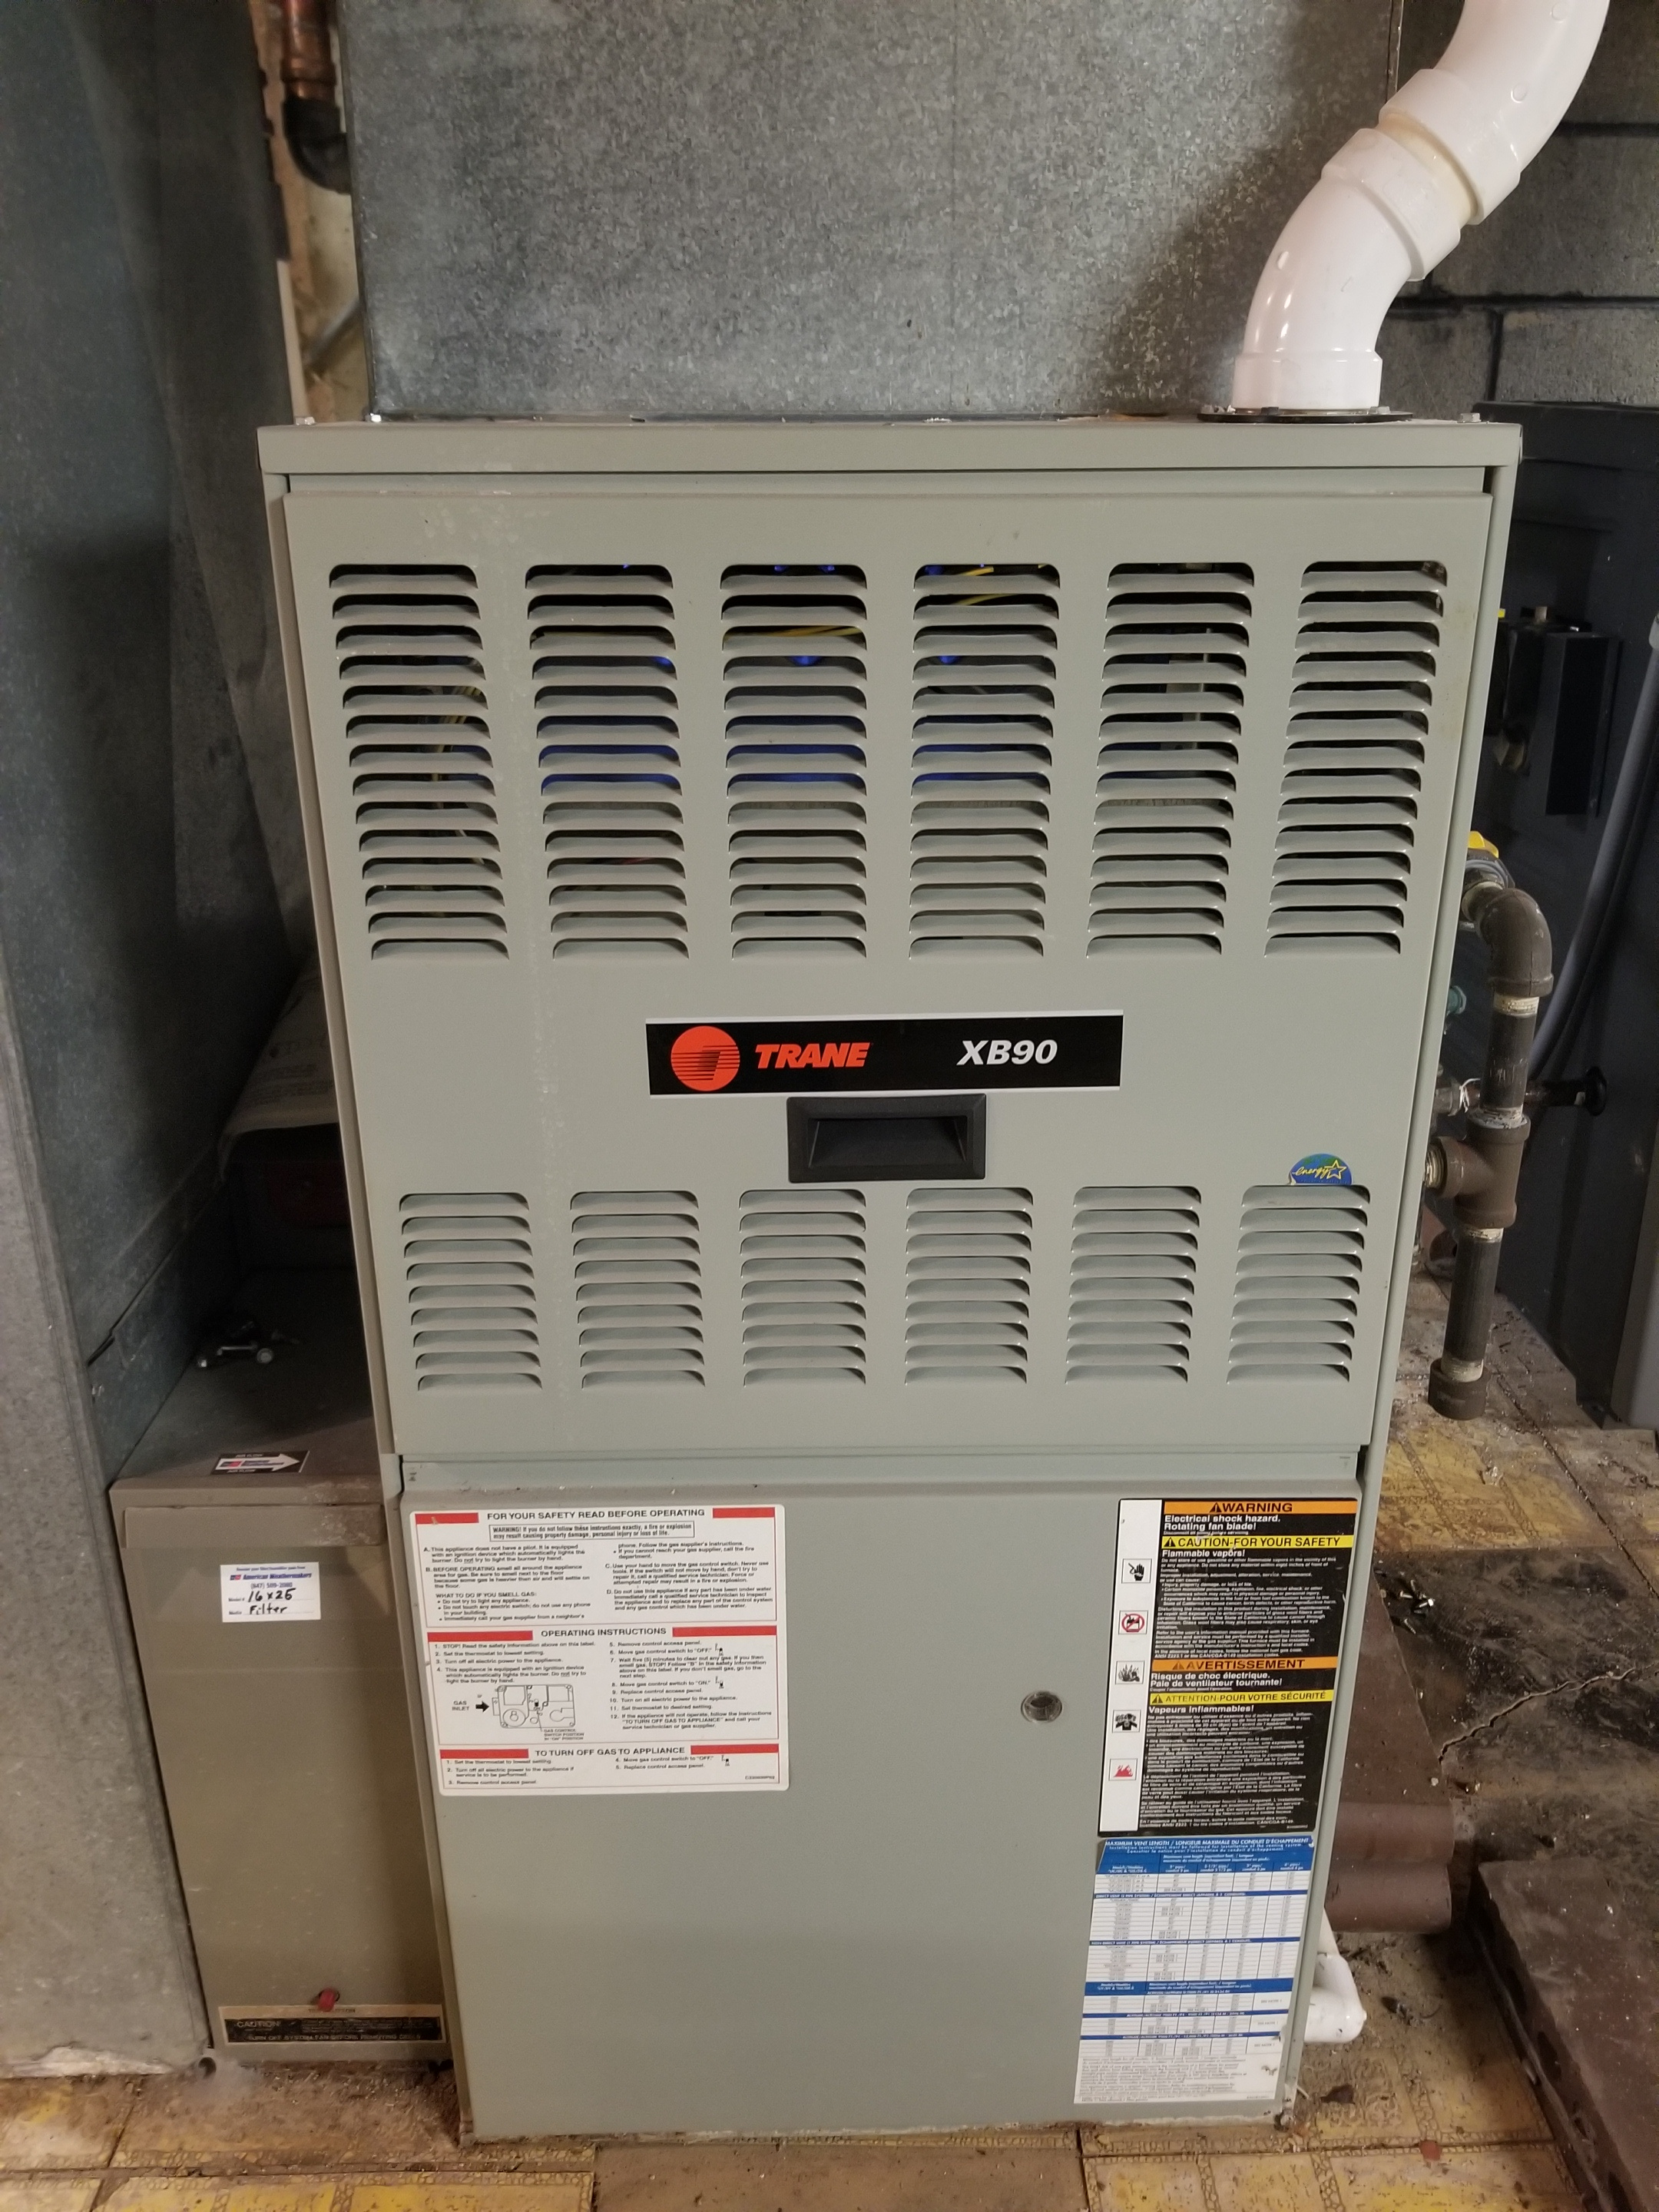 Performed annual maintenance on the Trane furnace and Aprilaire humidifier and made adjustments to improve the overall efficiency and life expectancy of the equipment